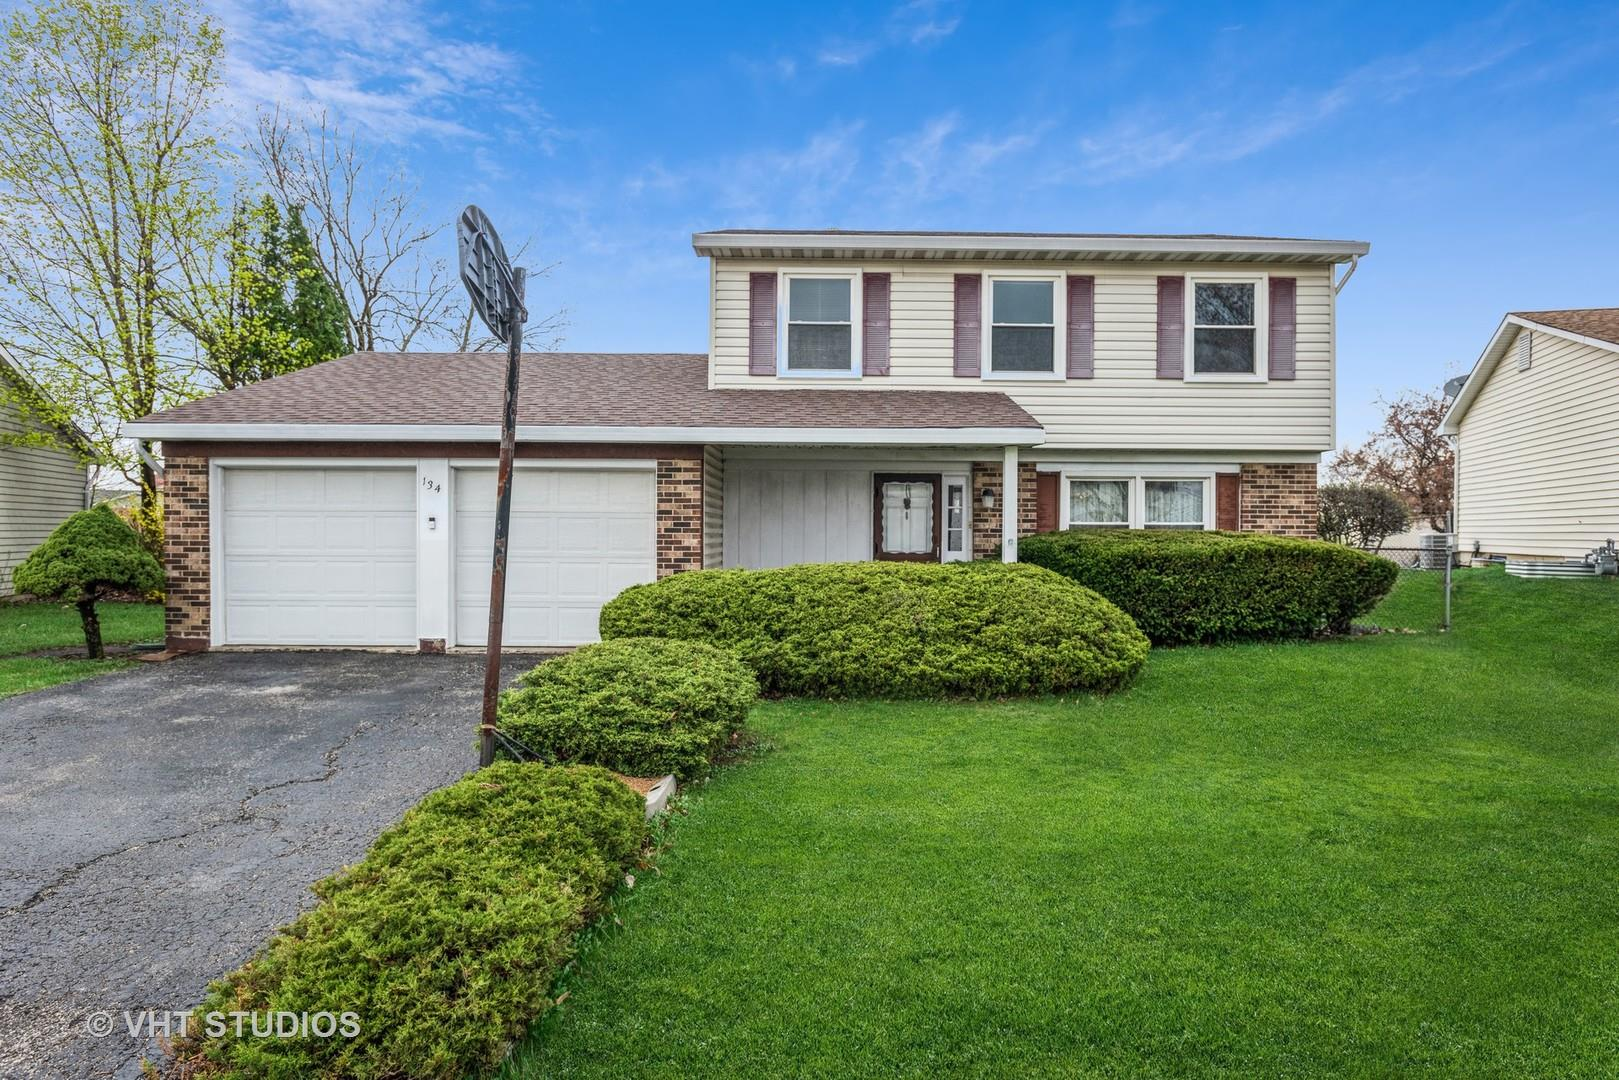 134 W Wrightwood Avenue, Glendale Heights, IL 60139 - #: 11041799